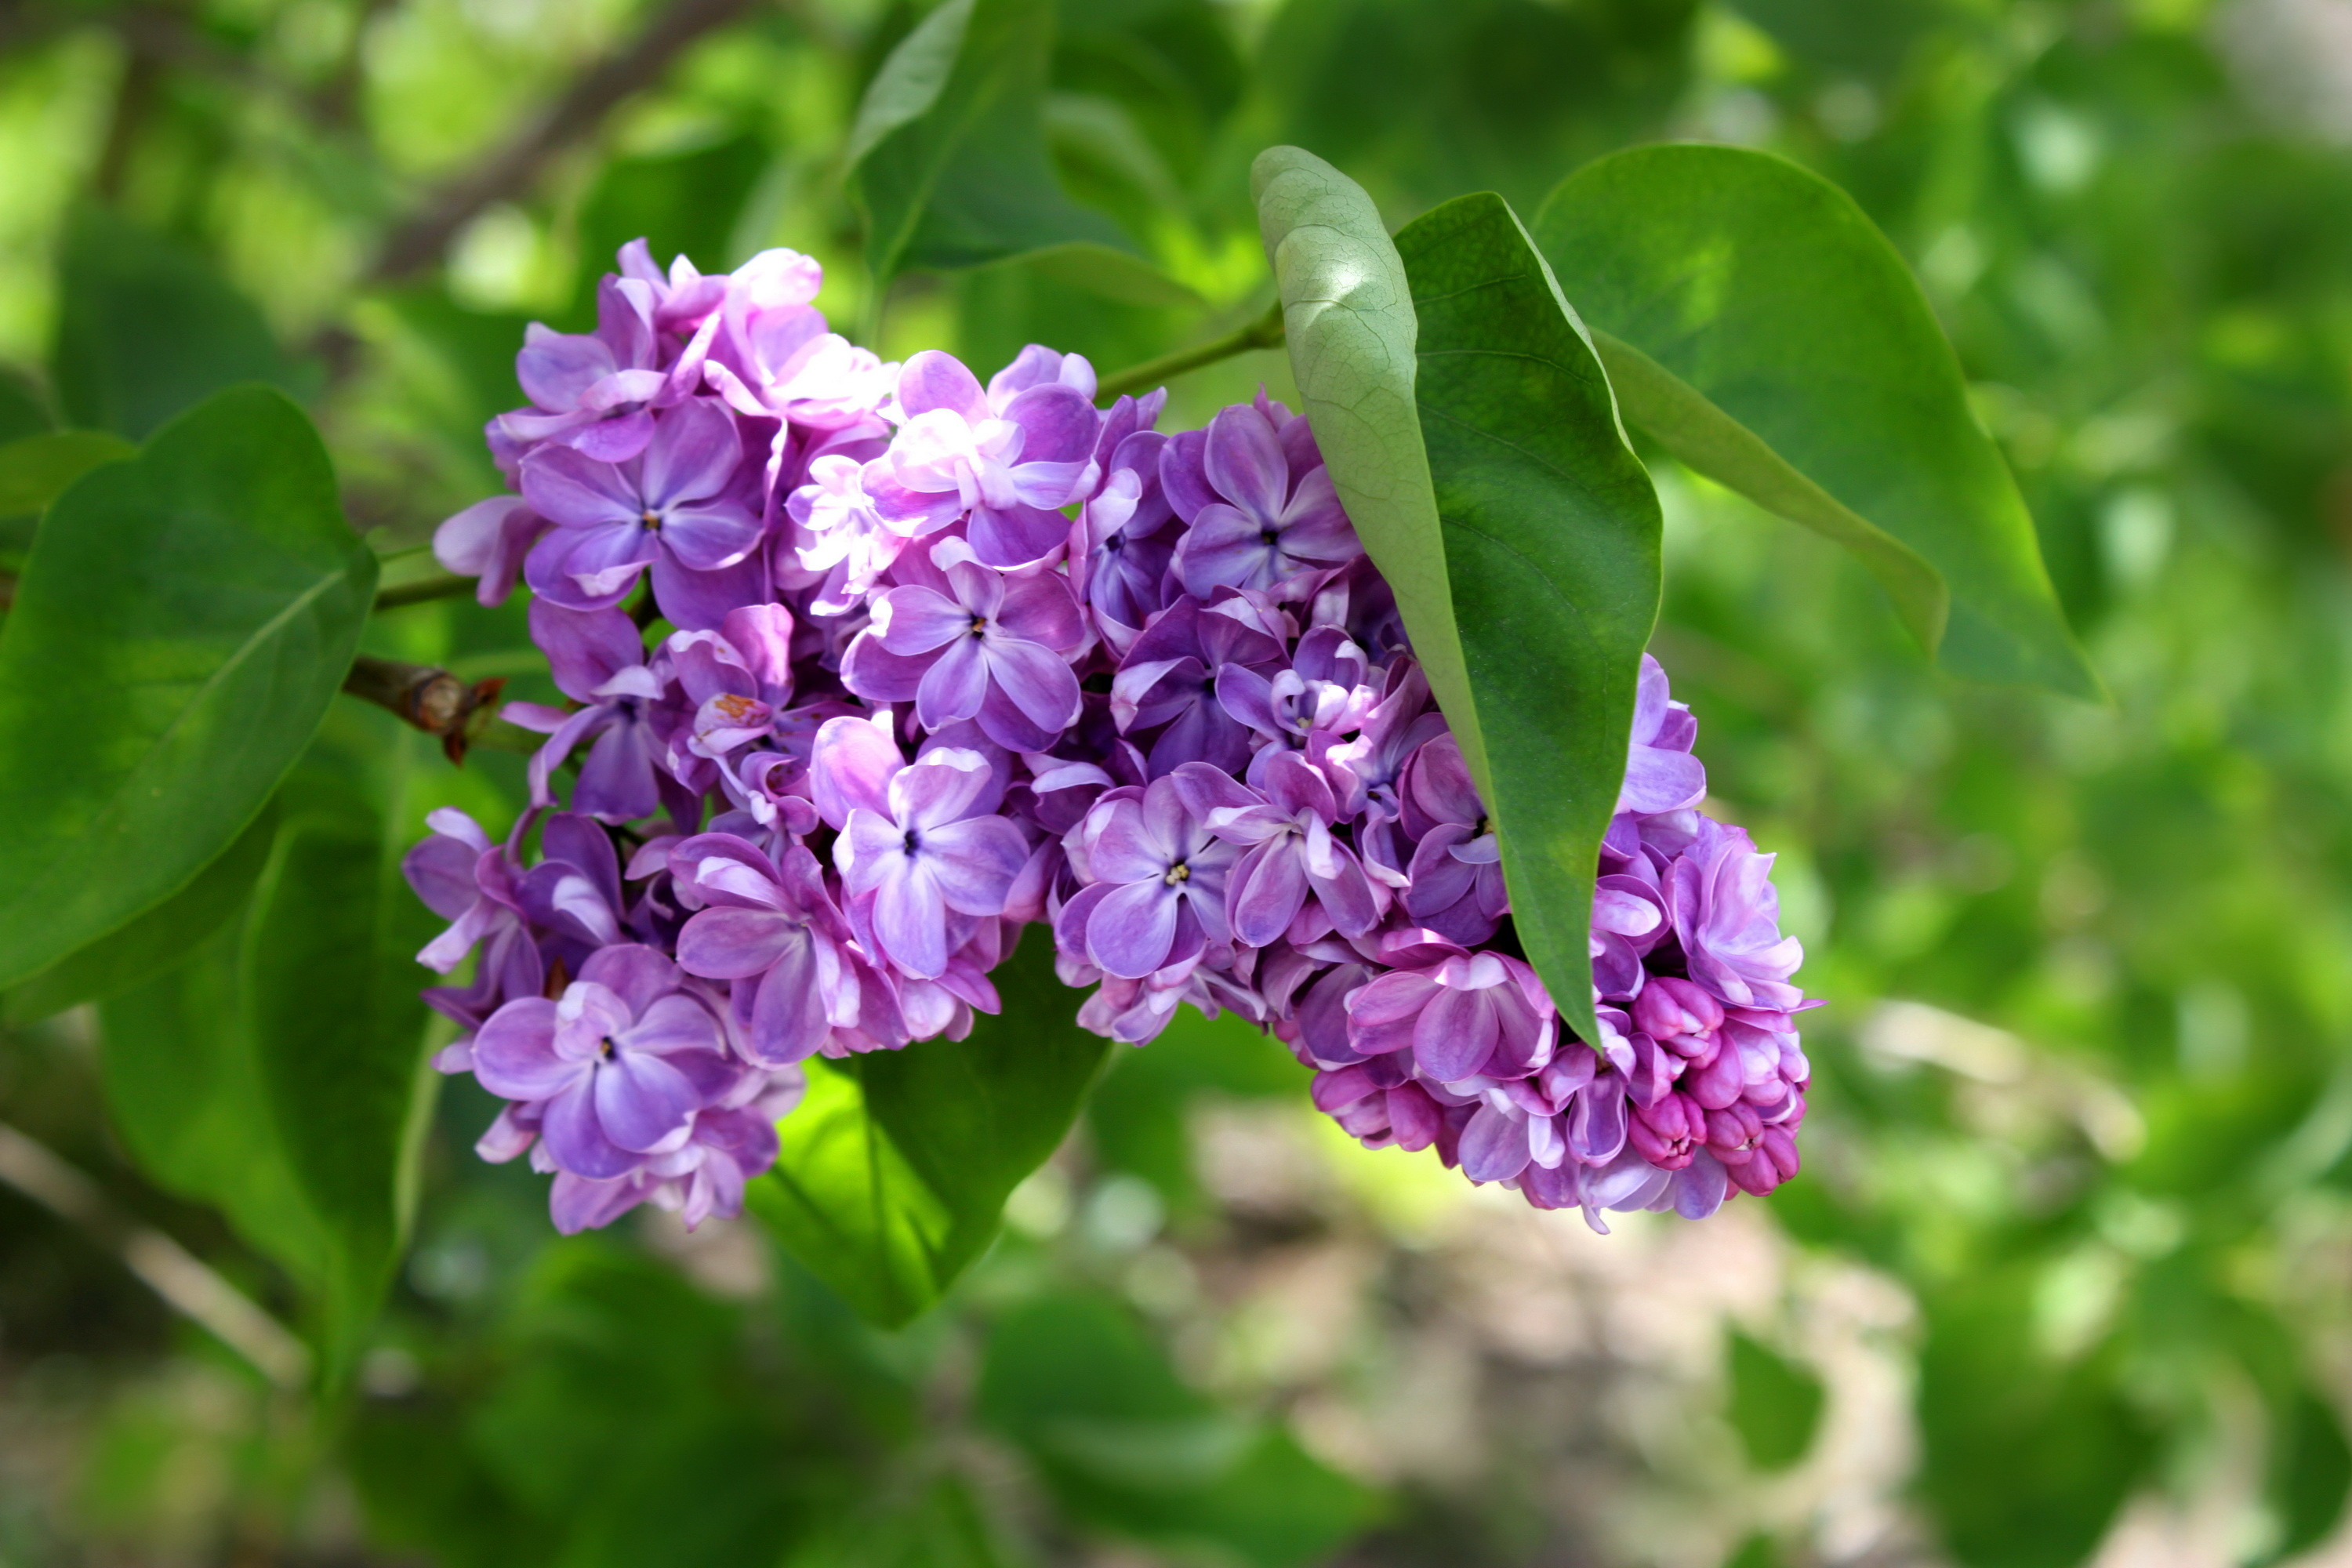 Lilac hd wallpaper background image 3000x2000 id for Paesaggi di primavera per desktop